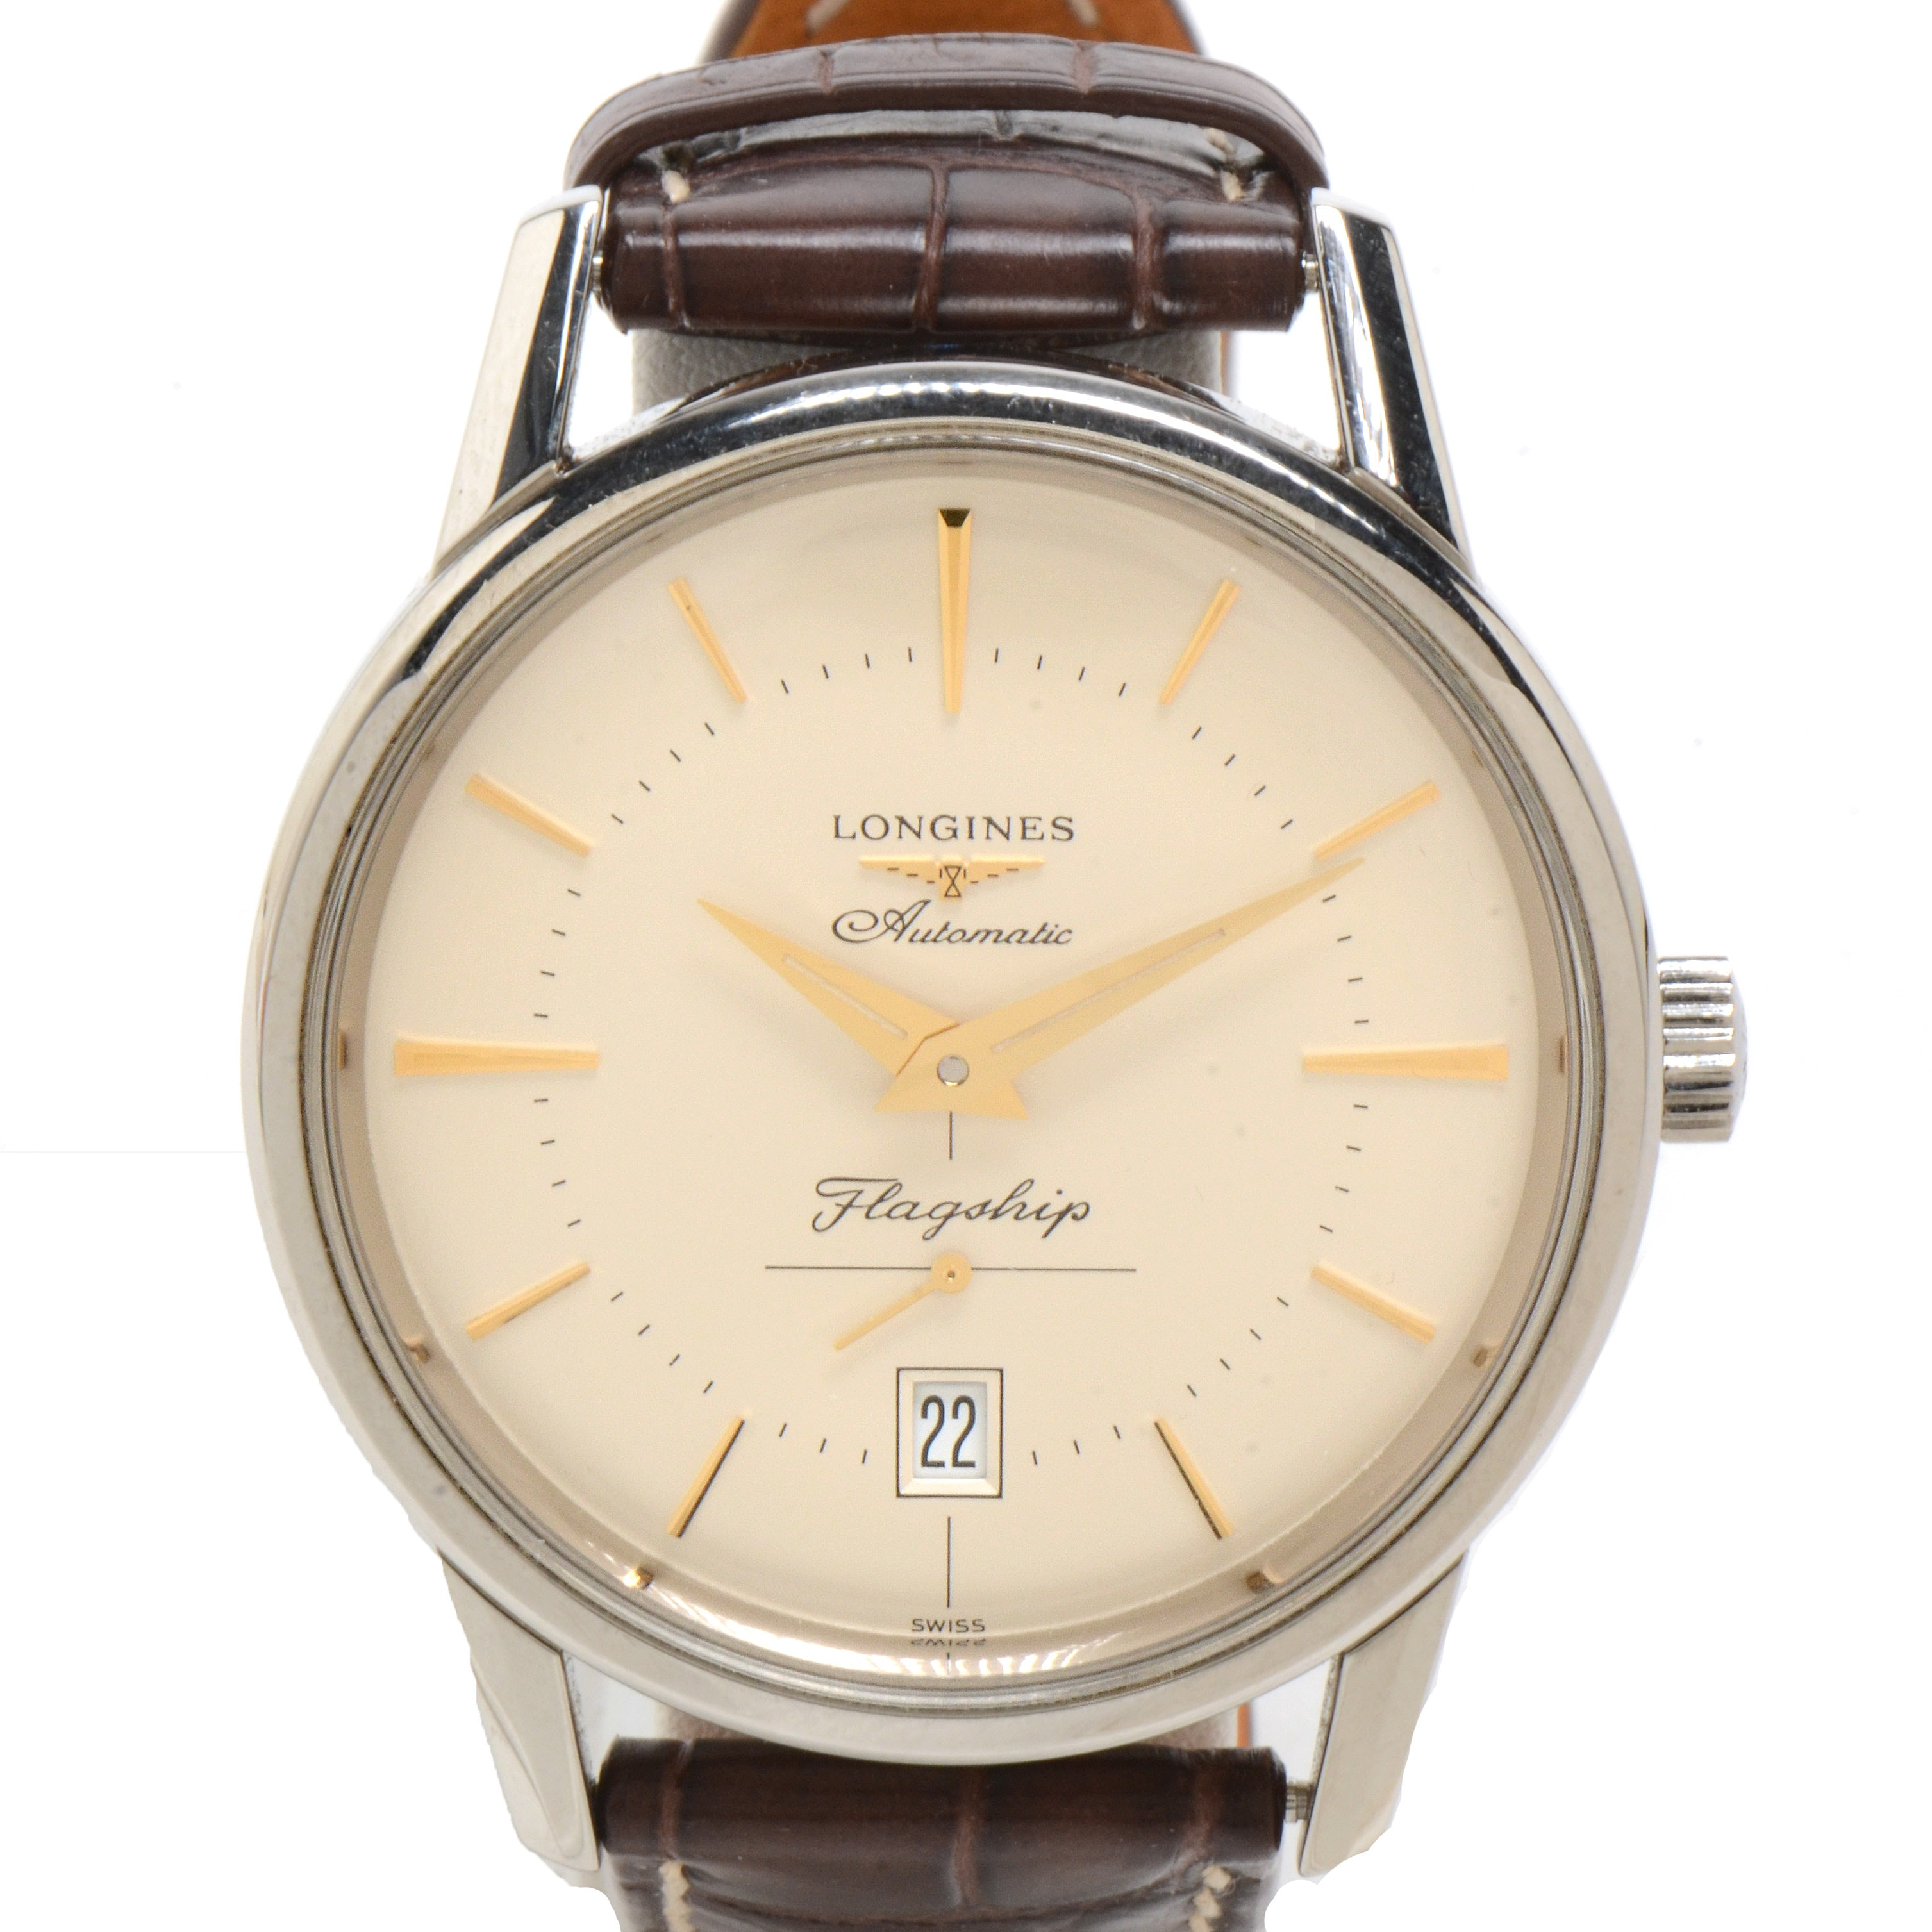 Longines Flagship Heritage Date Stainless Steel Automatic 38.5 mm